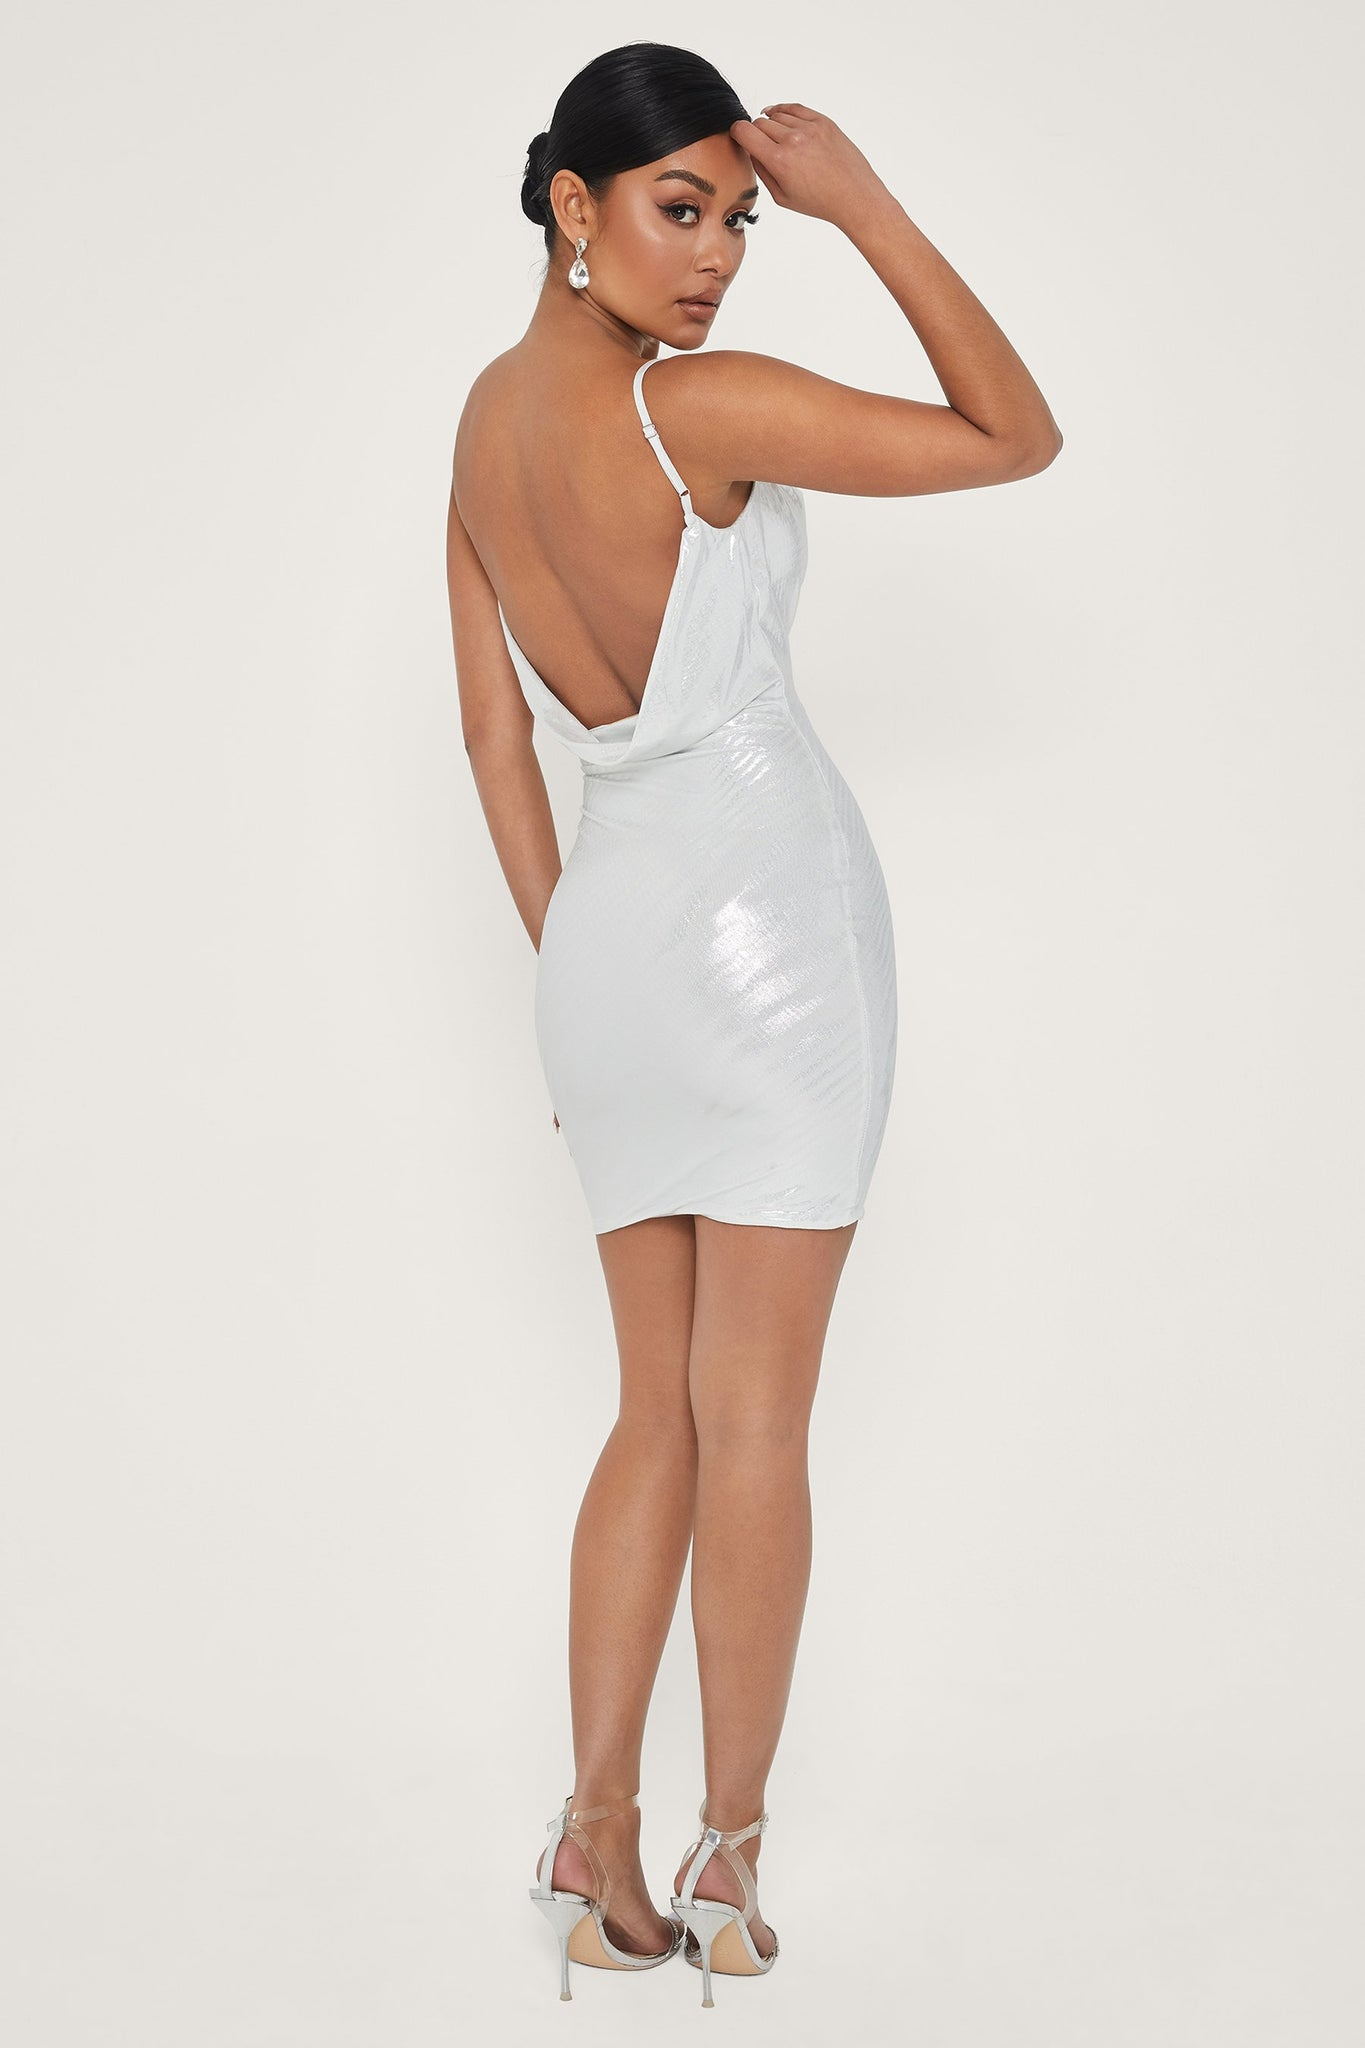 Kalia Cowl Neck Mini Dress - Silver - MESHKI